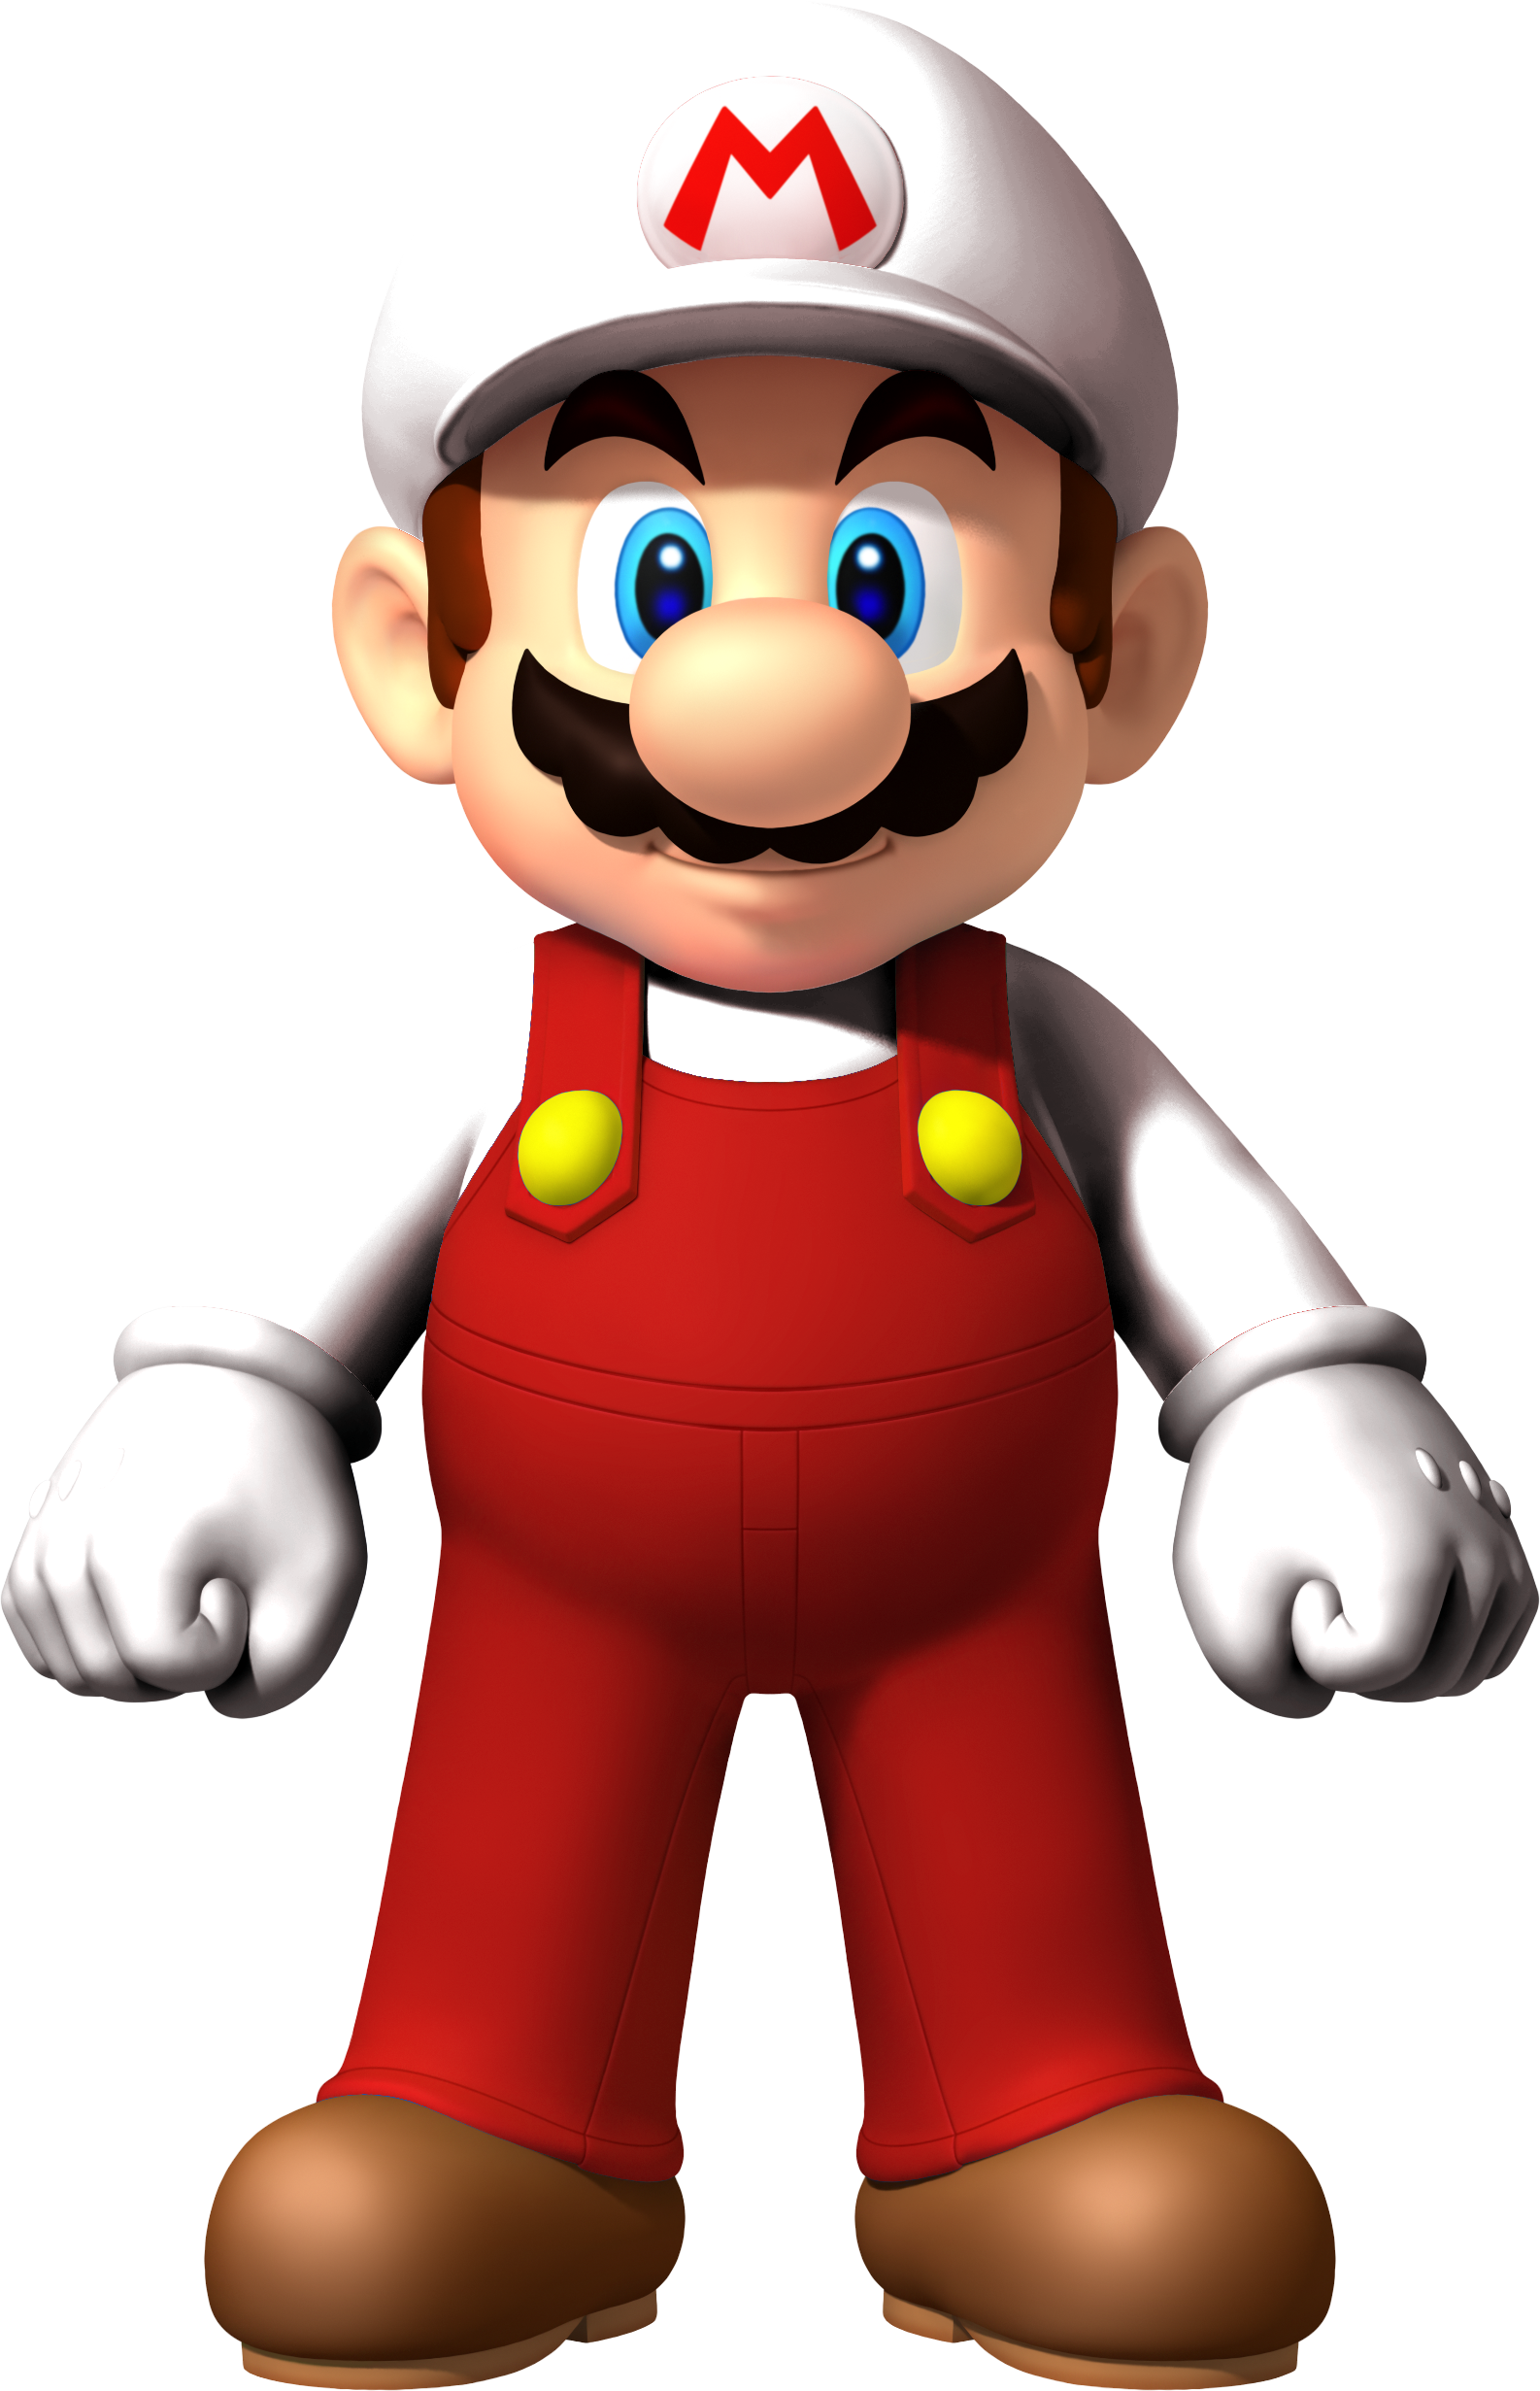 Mario clipart fire Super Fire by More Wii)